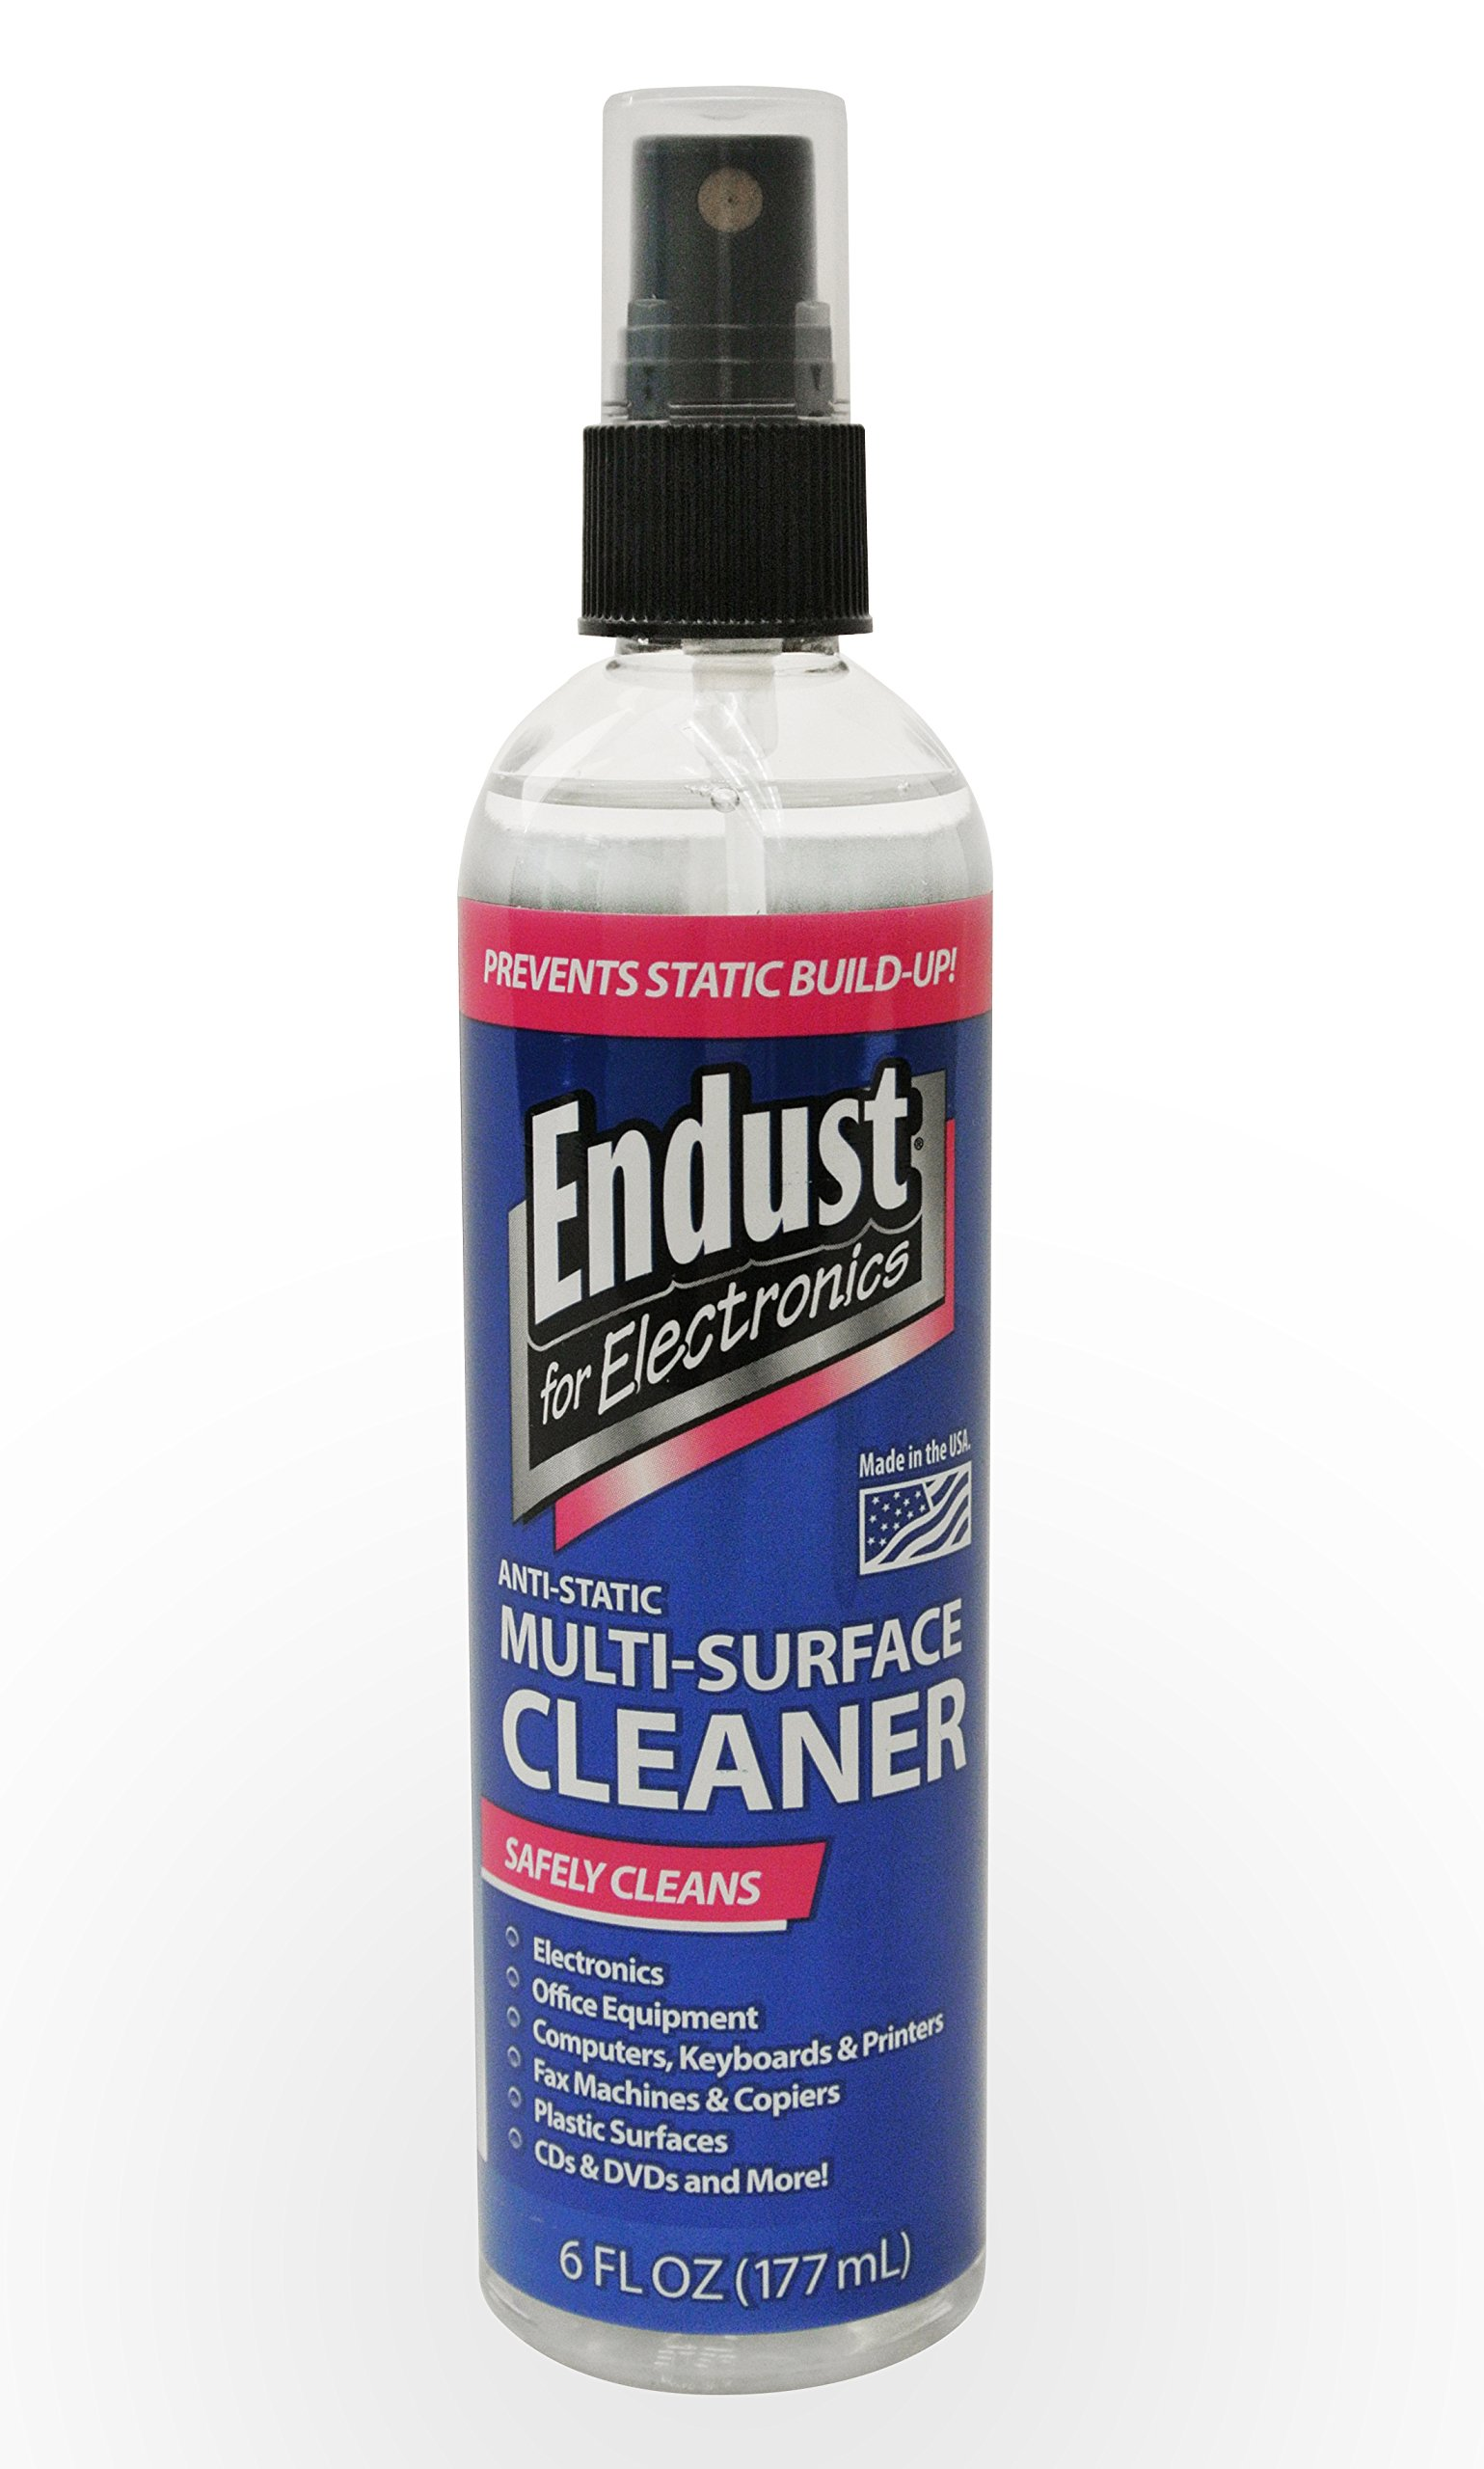 Endust Anti-Static Cleaning and Dusting Pump-Spray - 12 Pack (097000P12)